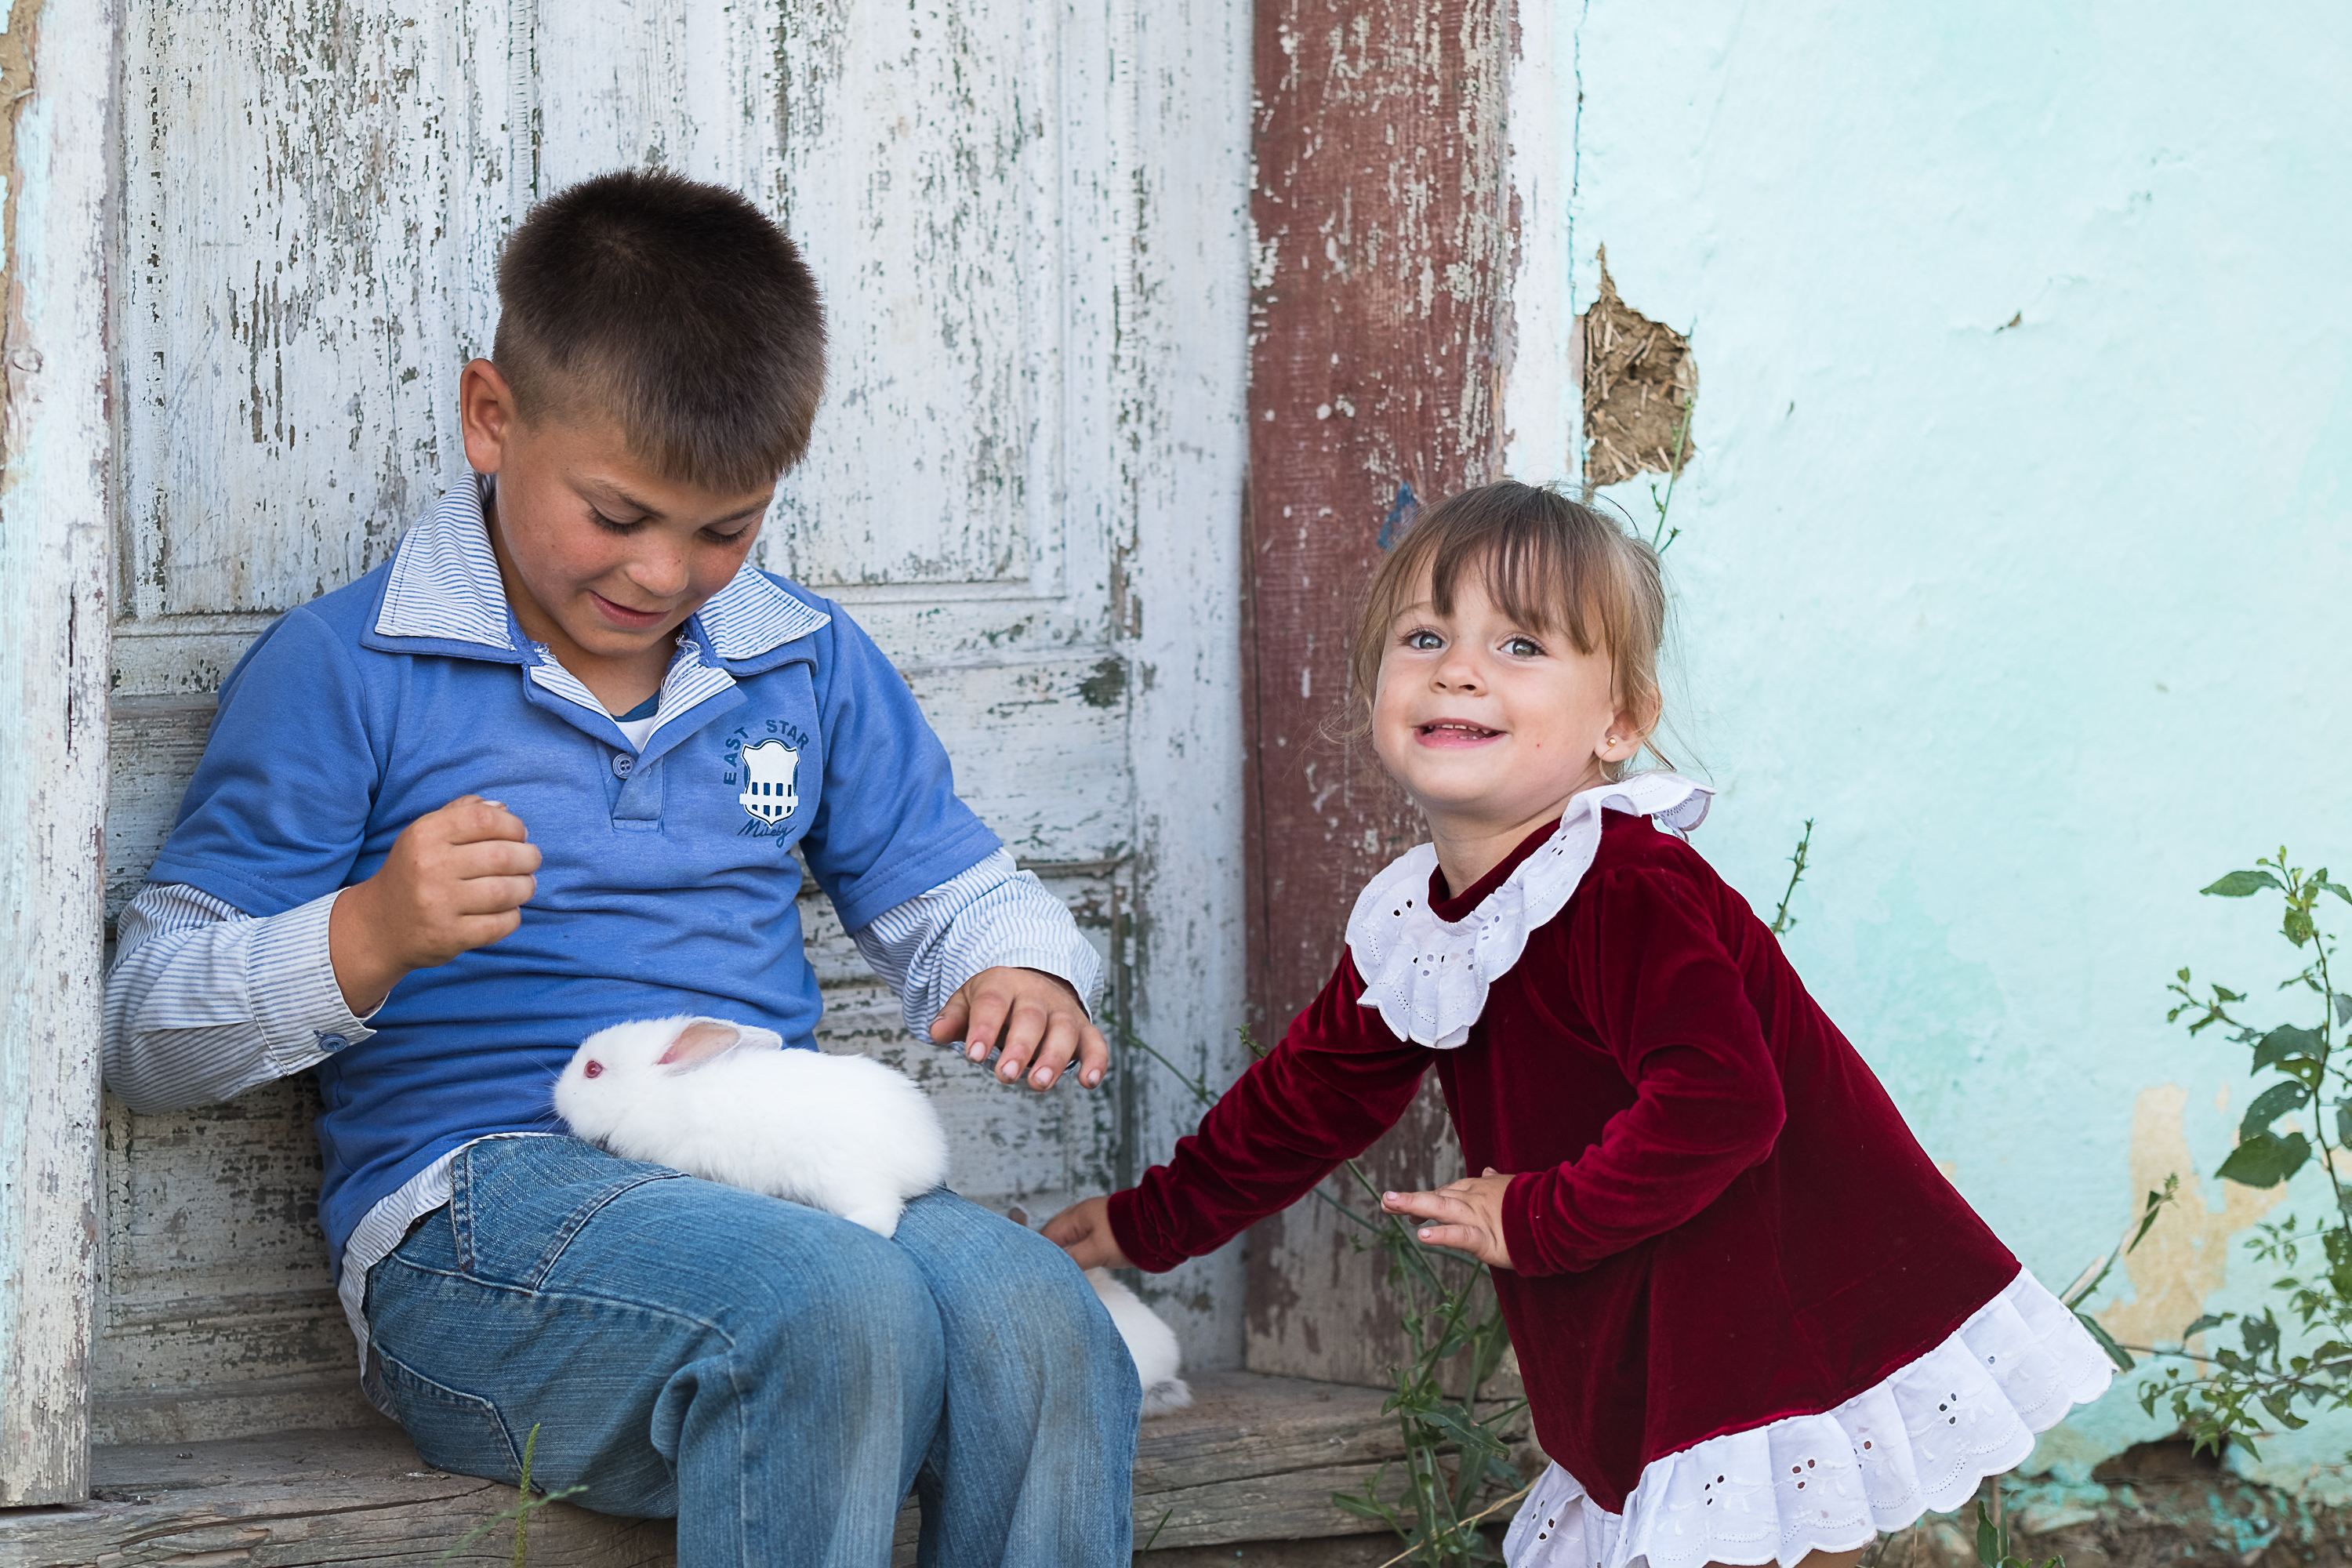 Boy and a girl playing with a rabbit